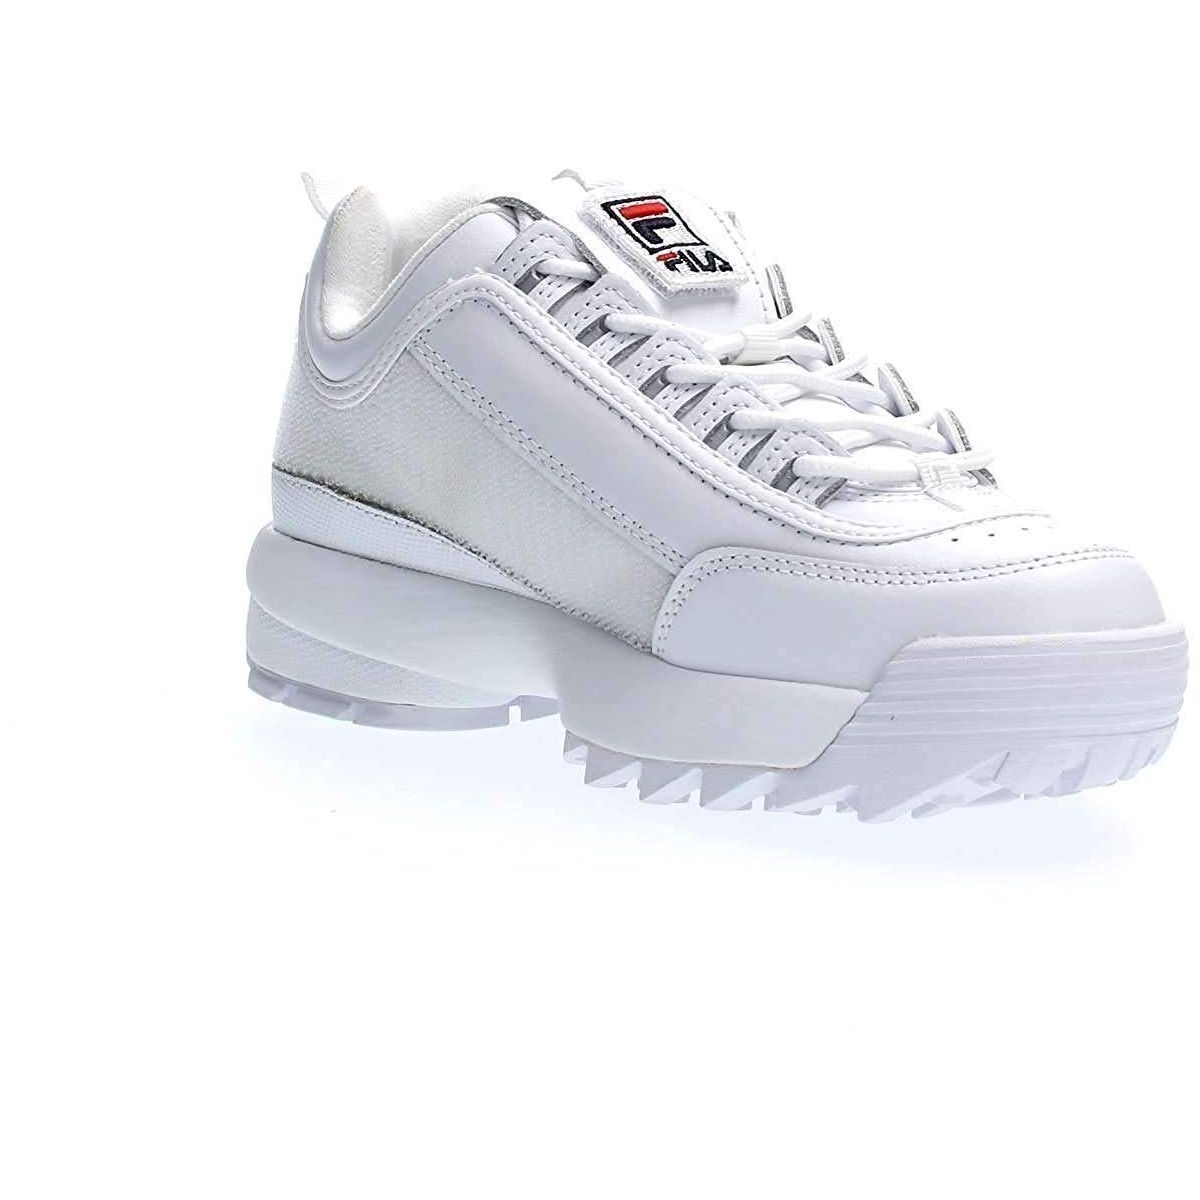 Fila femme disruptor 2 patches blanc1179601_4